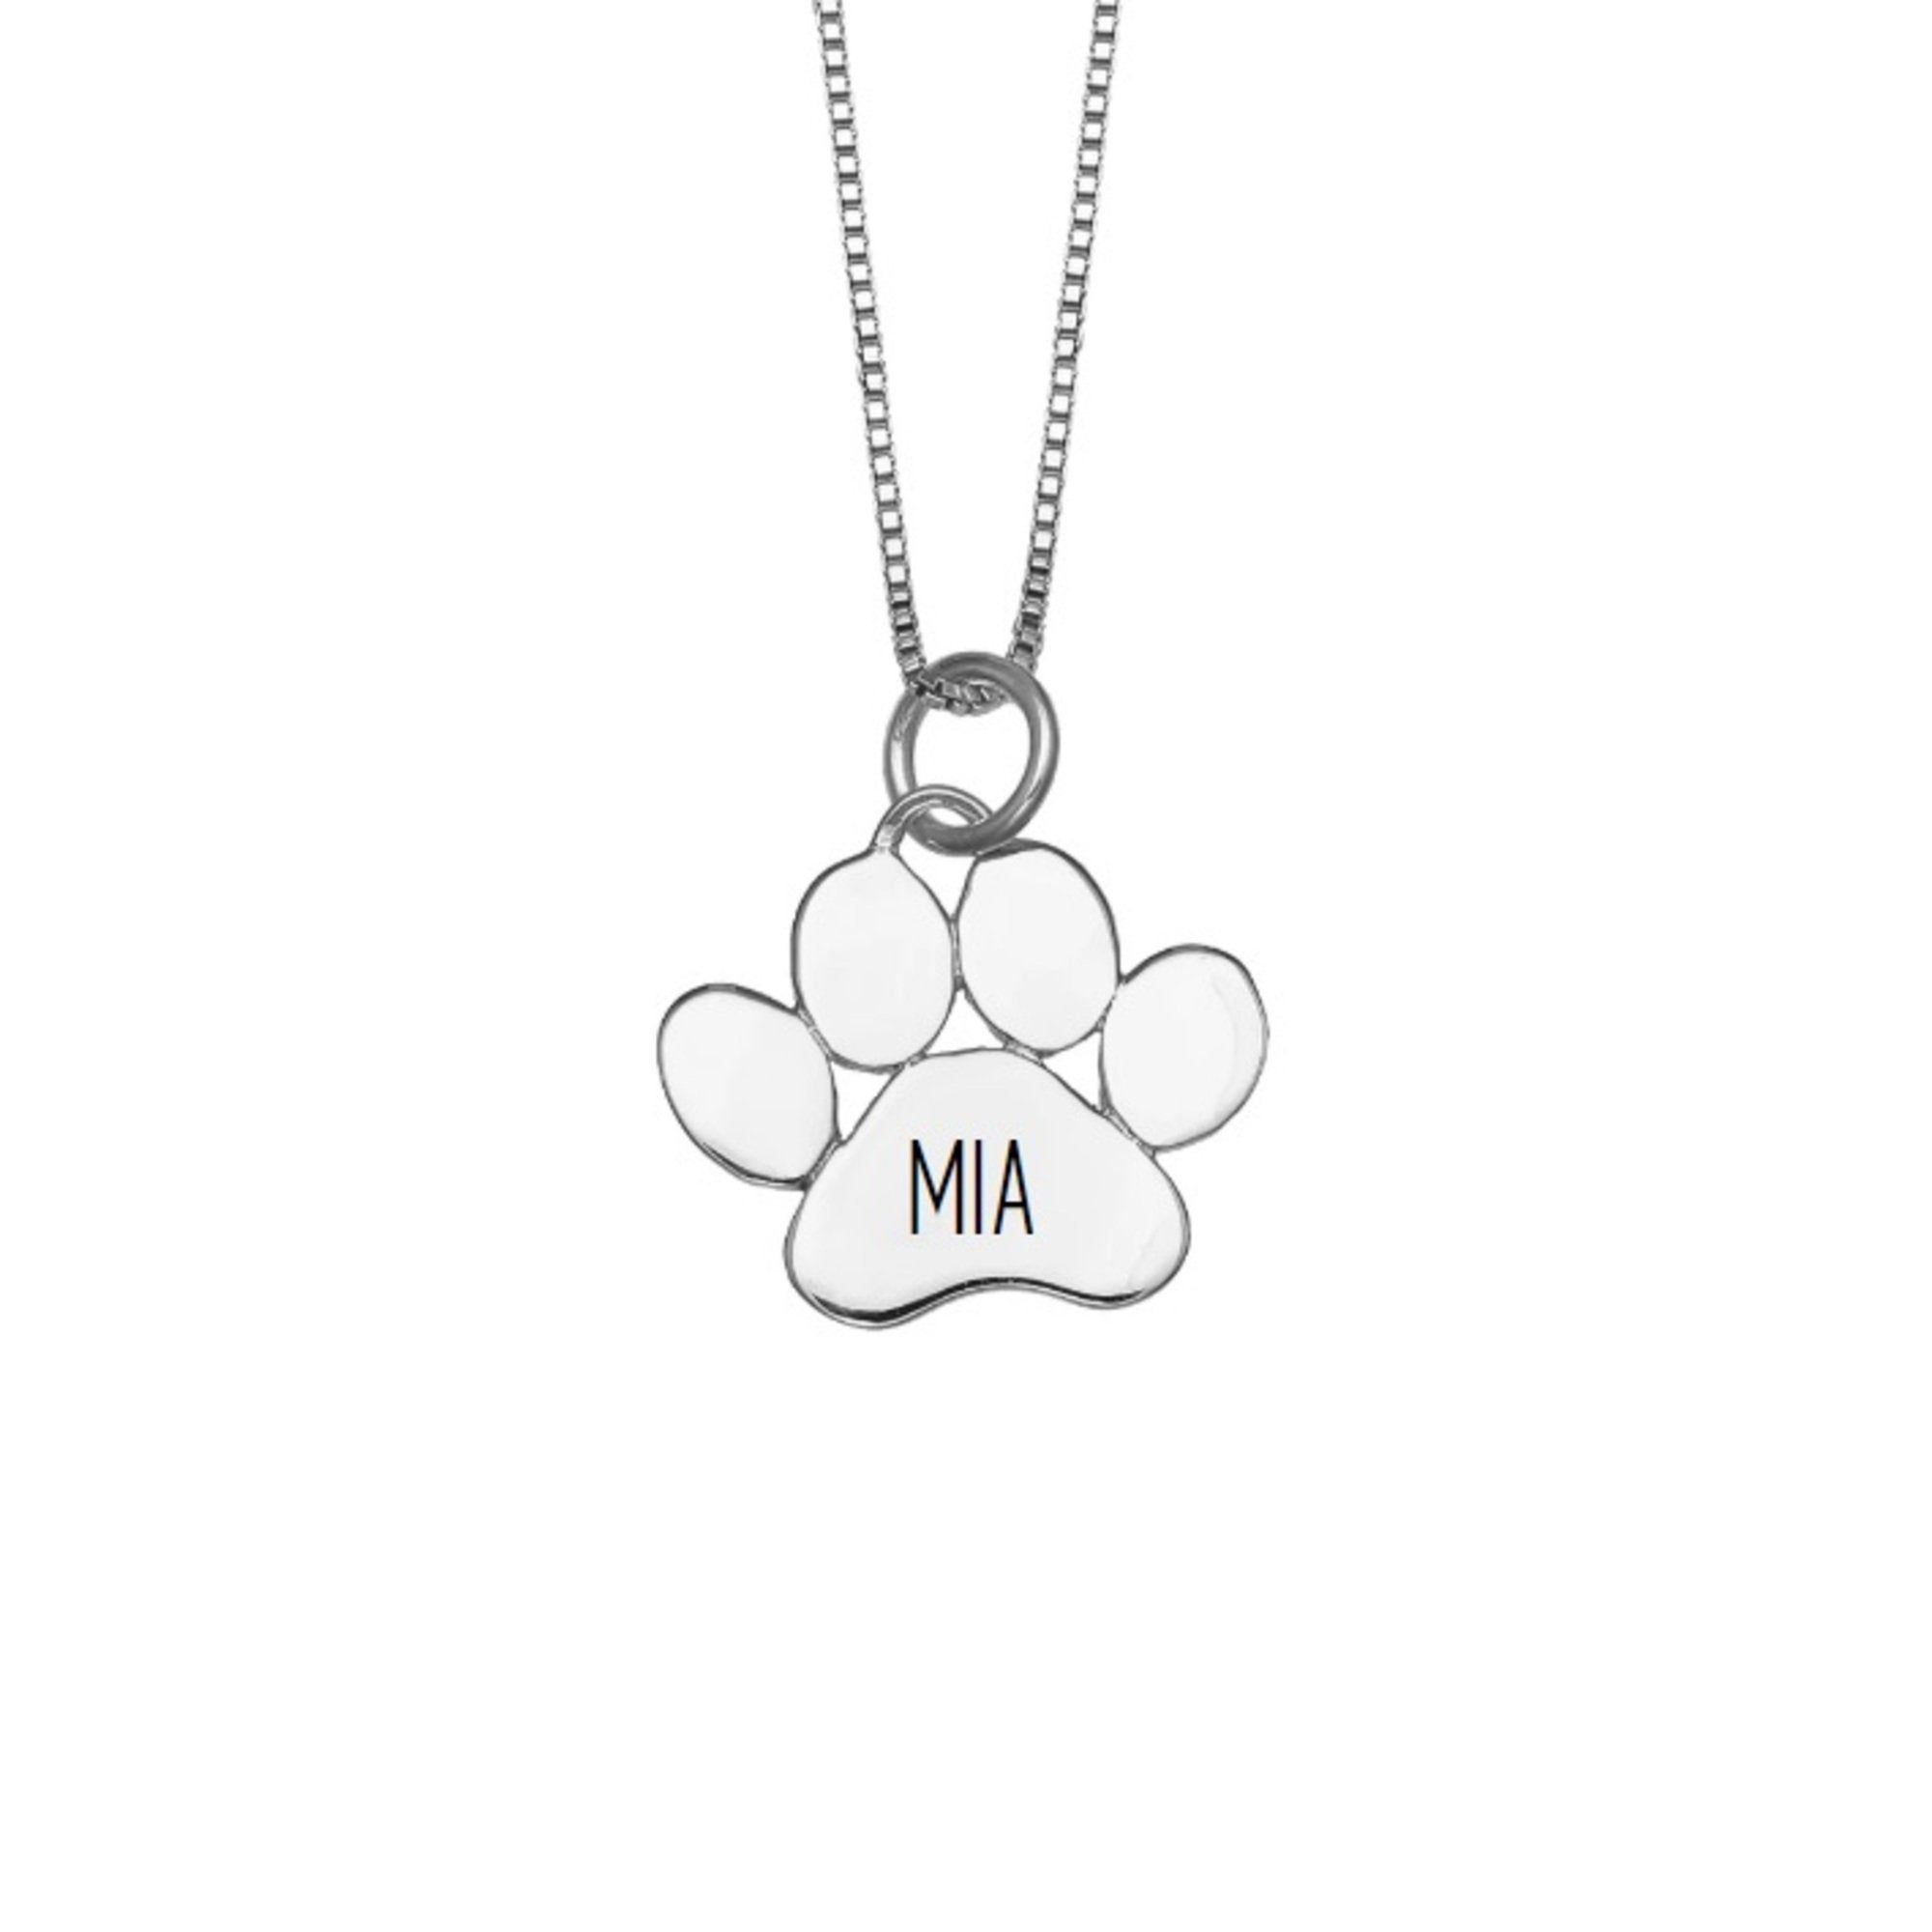 Dainty Sterling Silver Love Paw Print Charm Necklace  Gift for Her